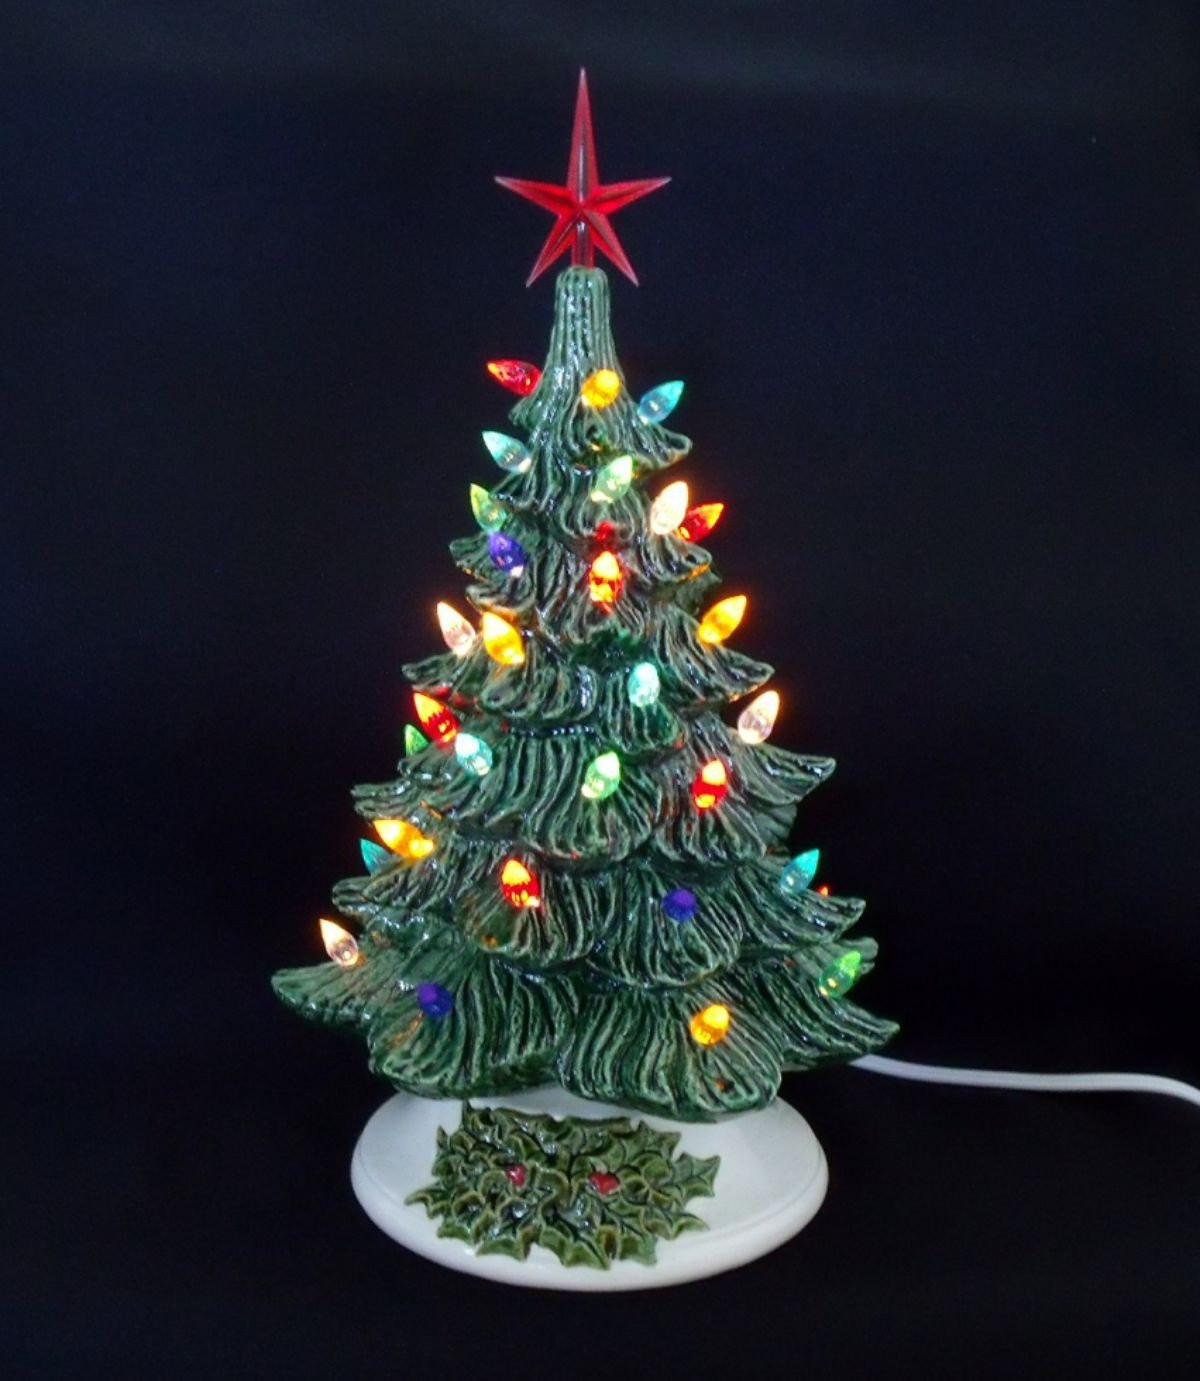 Old Fashioned Christmas Tree Inspirational Old Fashioned Ceramic Christmas Tree 11 Inches by Of Amazing 43 Photos Old Fashioned Christmas Tree